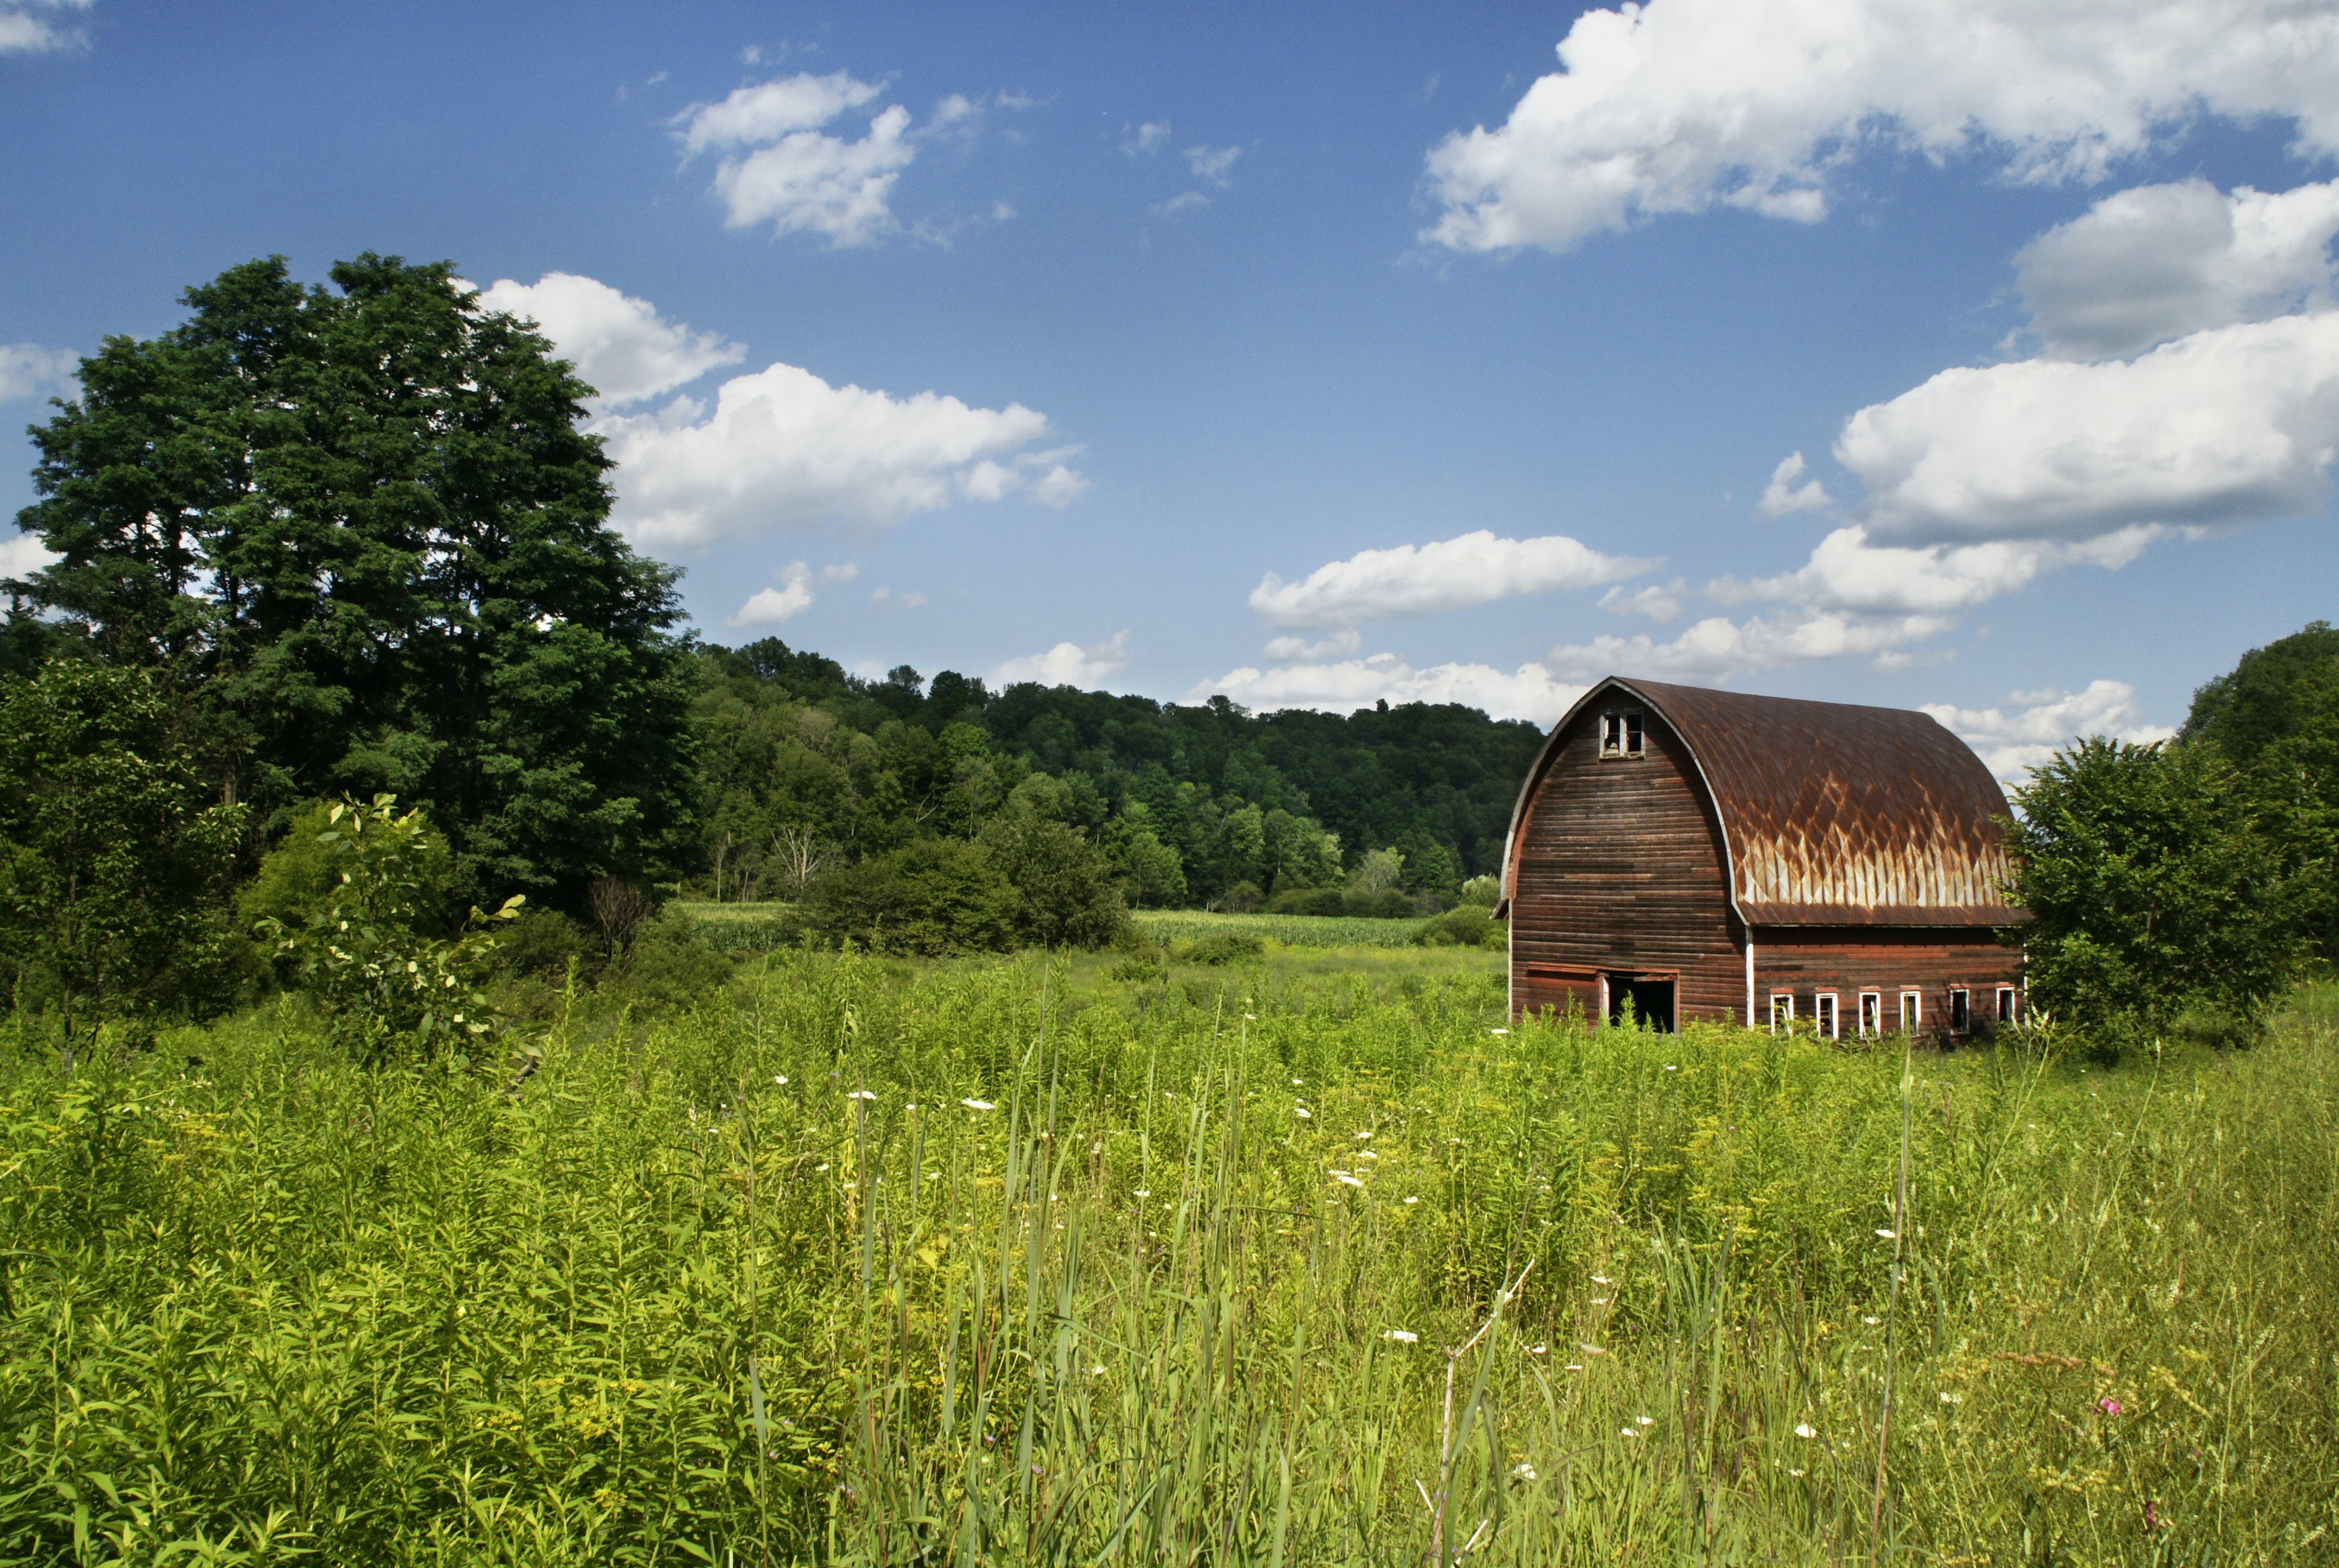 Brown Barn Surrounded by Green Grass